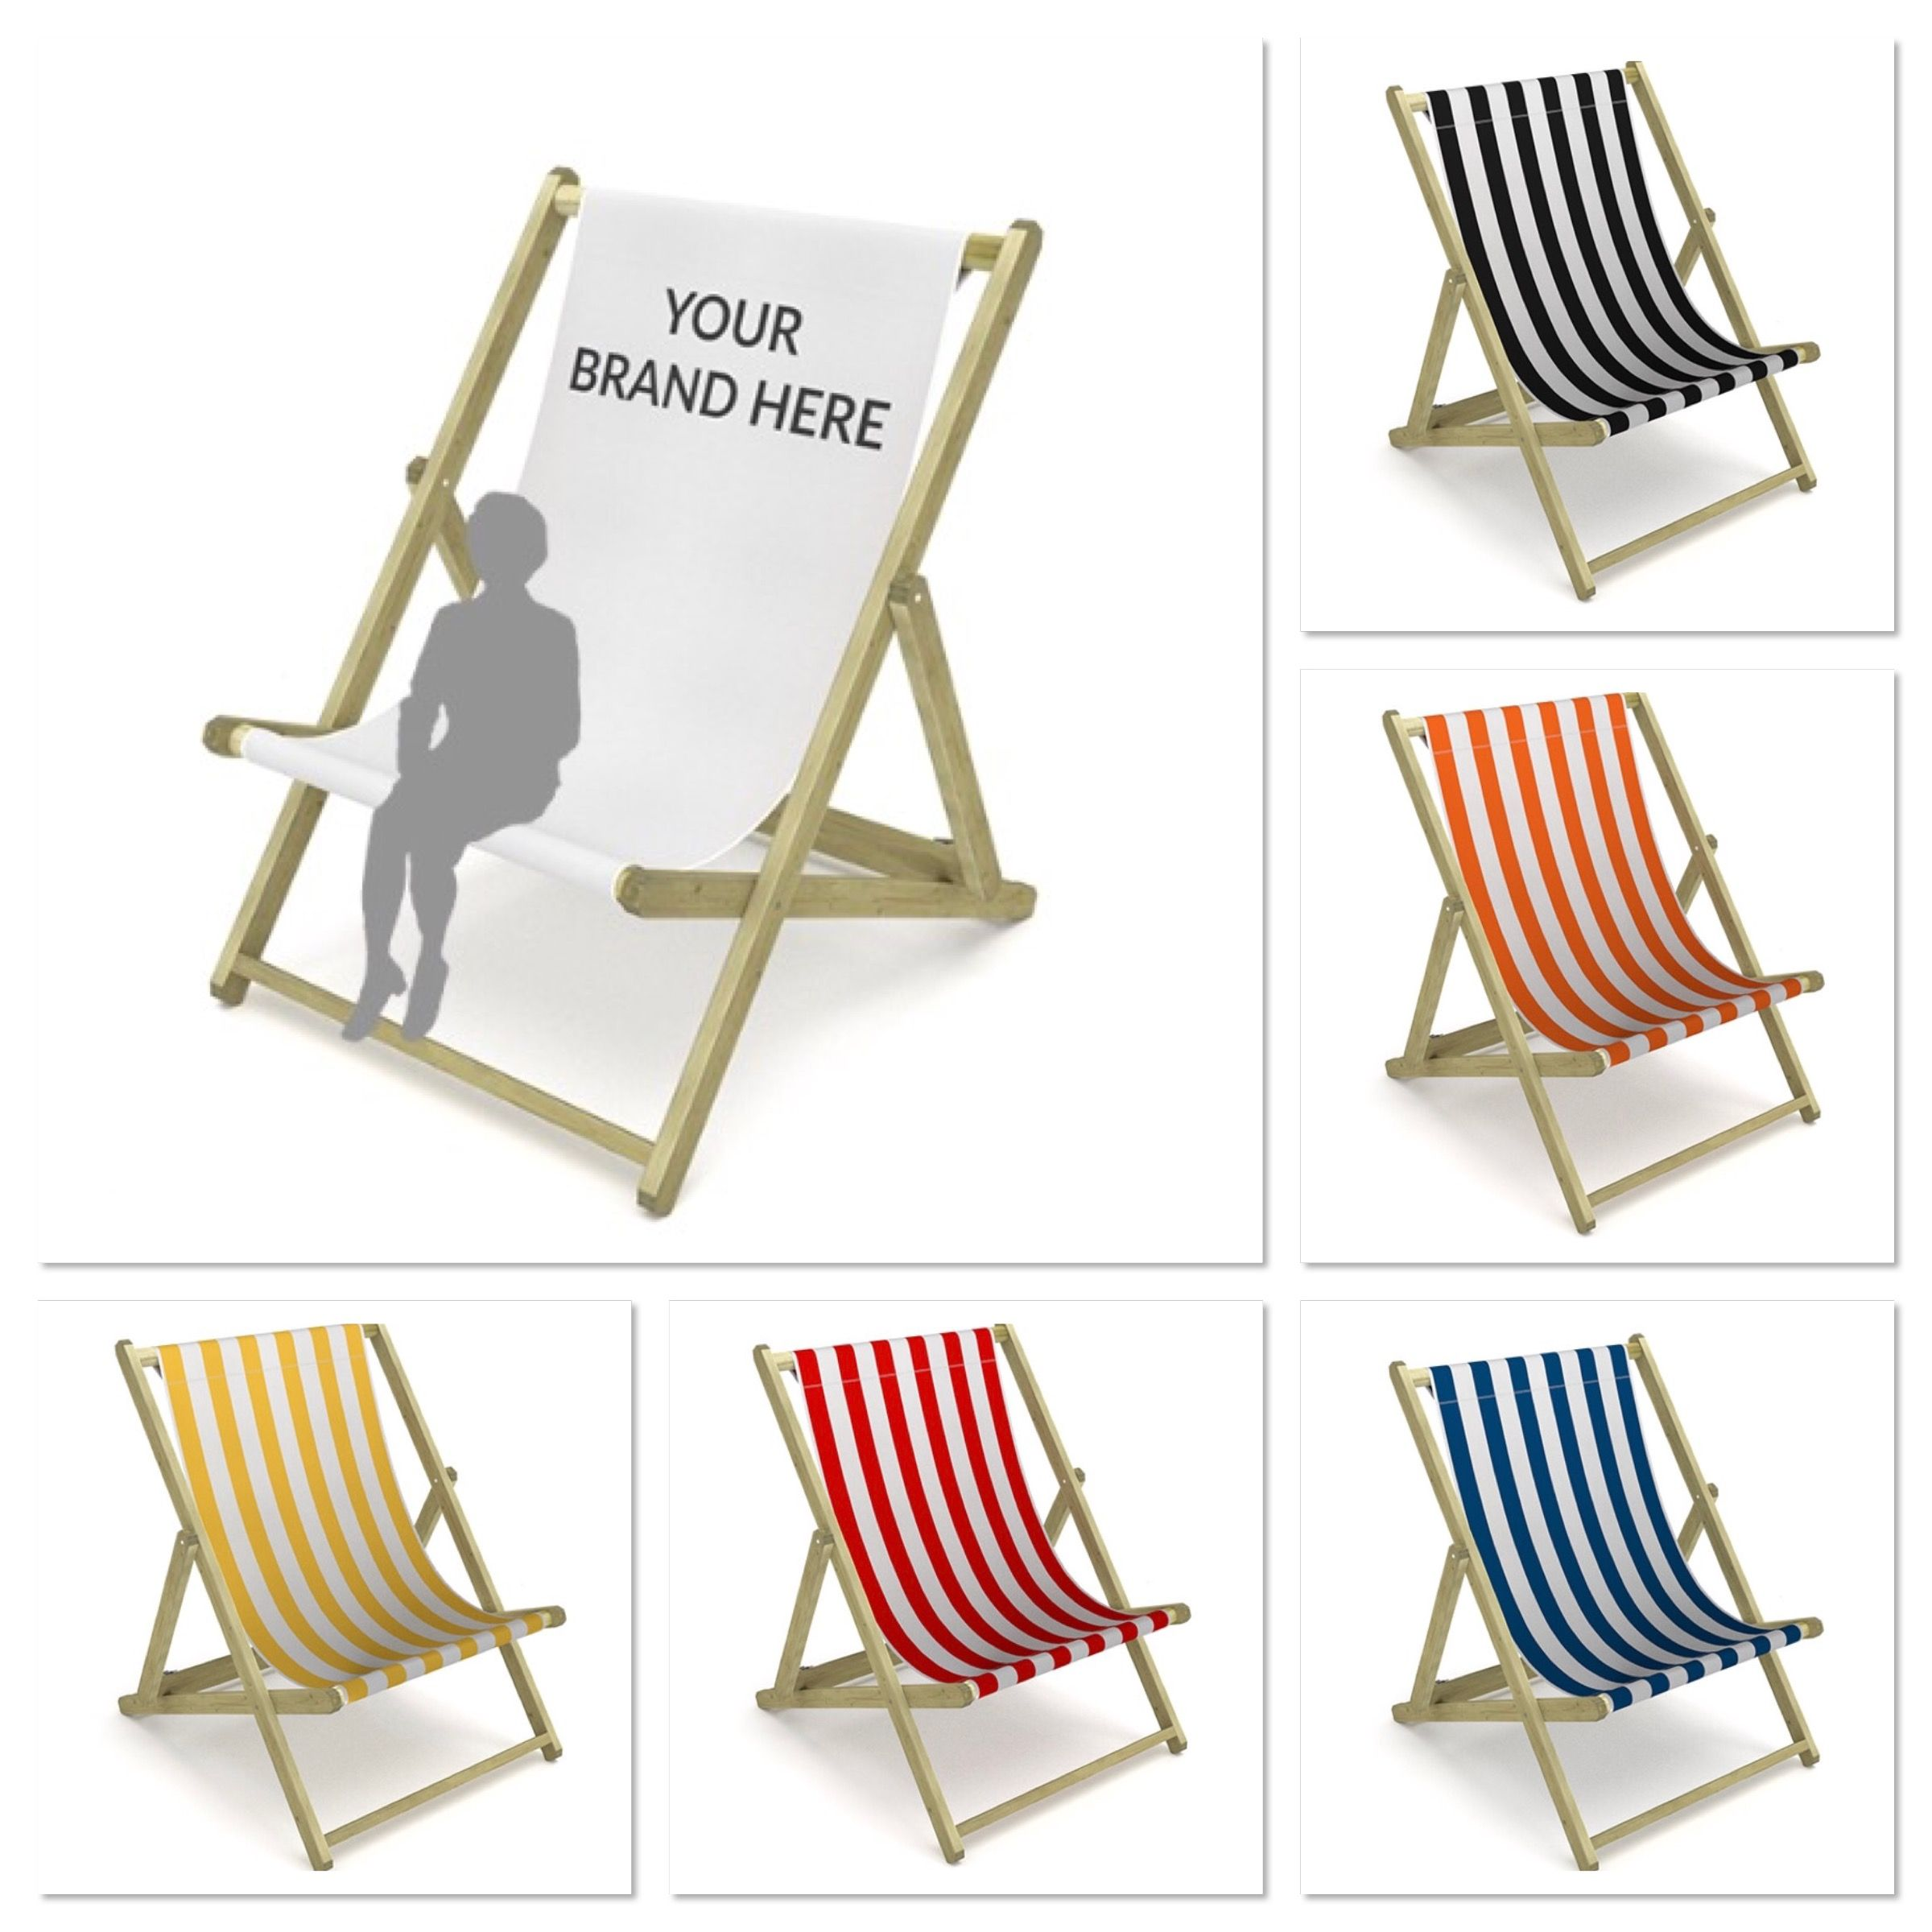 Swing Chair Hire Kitchen Covers Walmart Giant Deckchair Shop Online At Witney Weddings Events